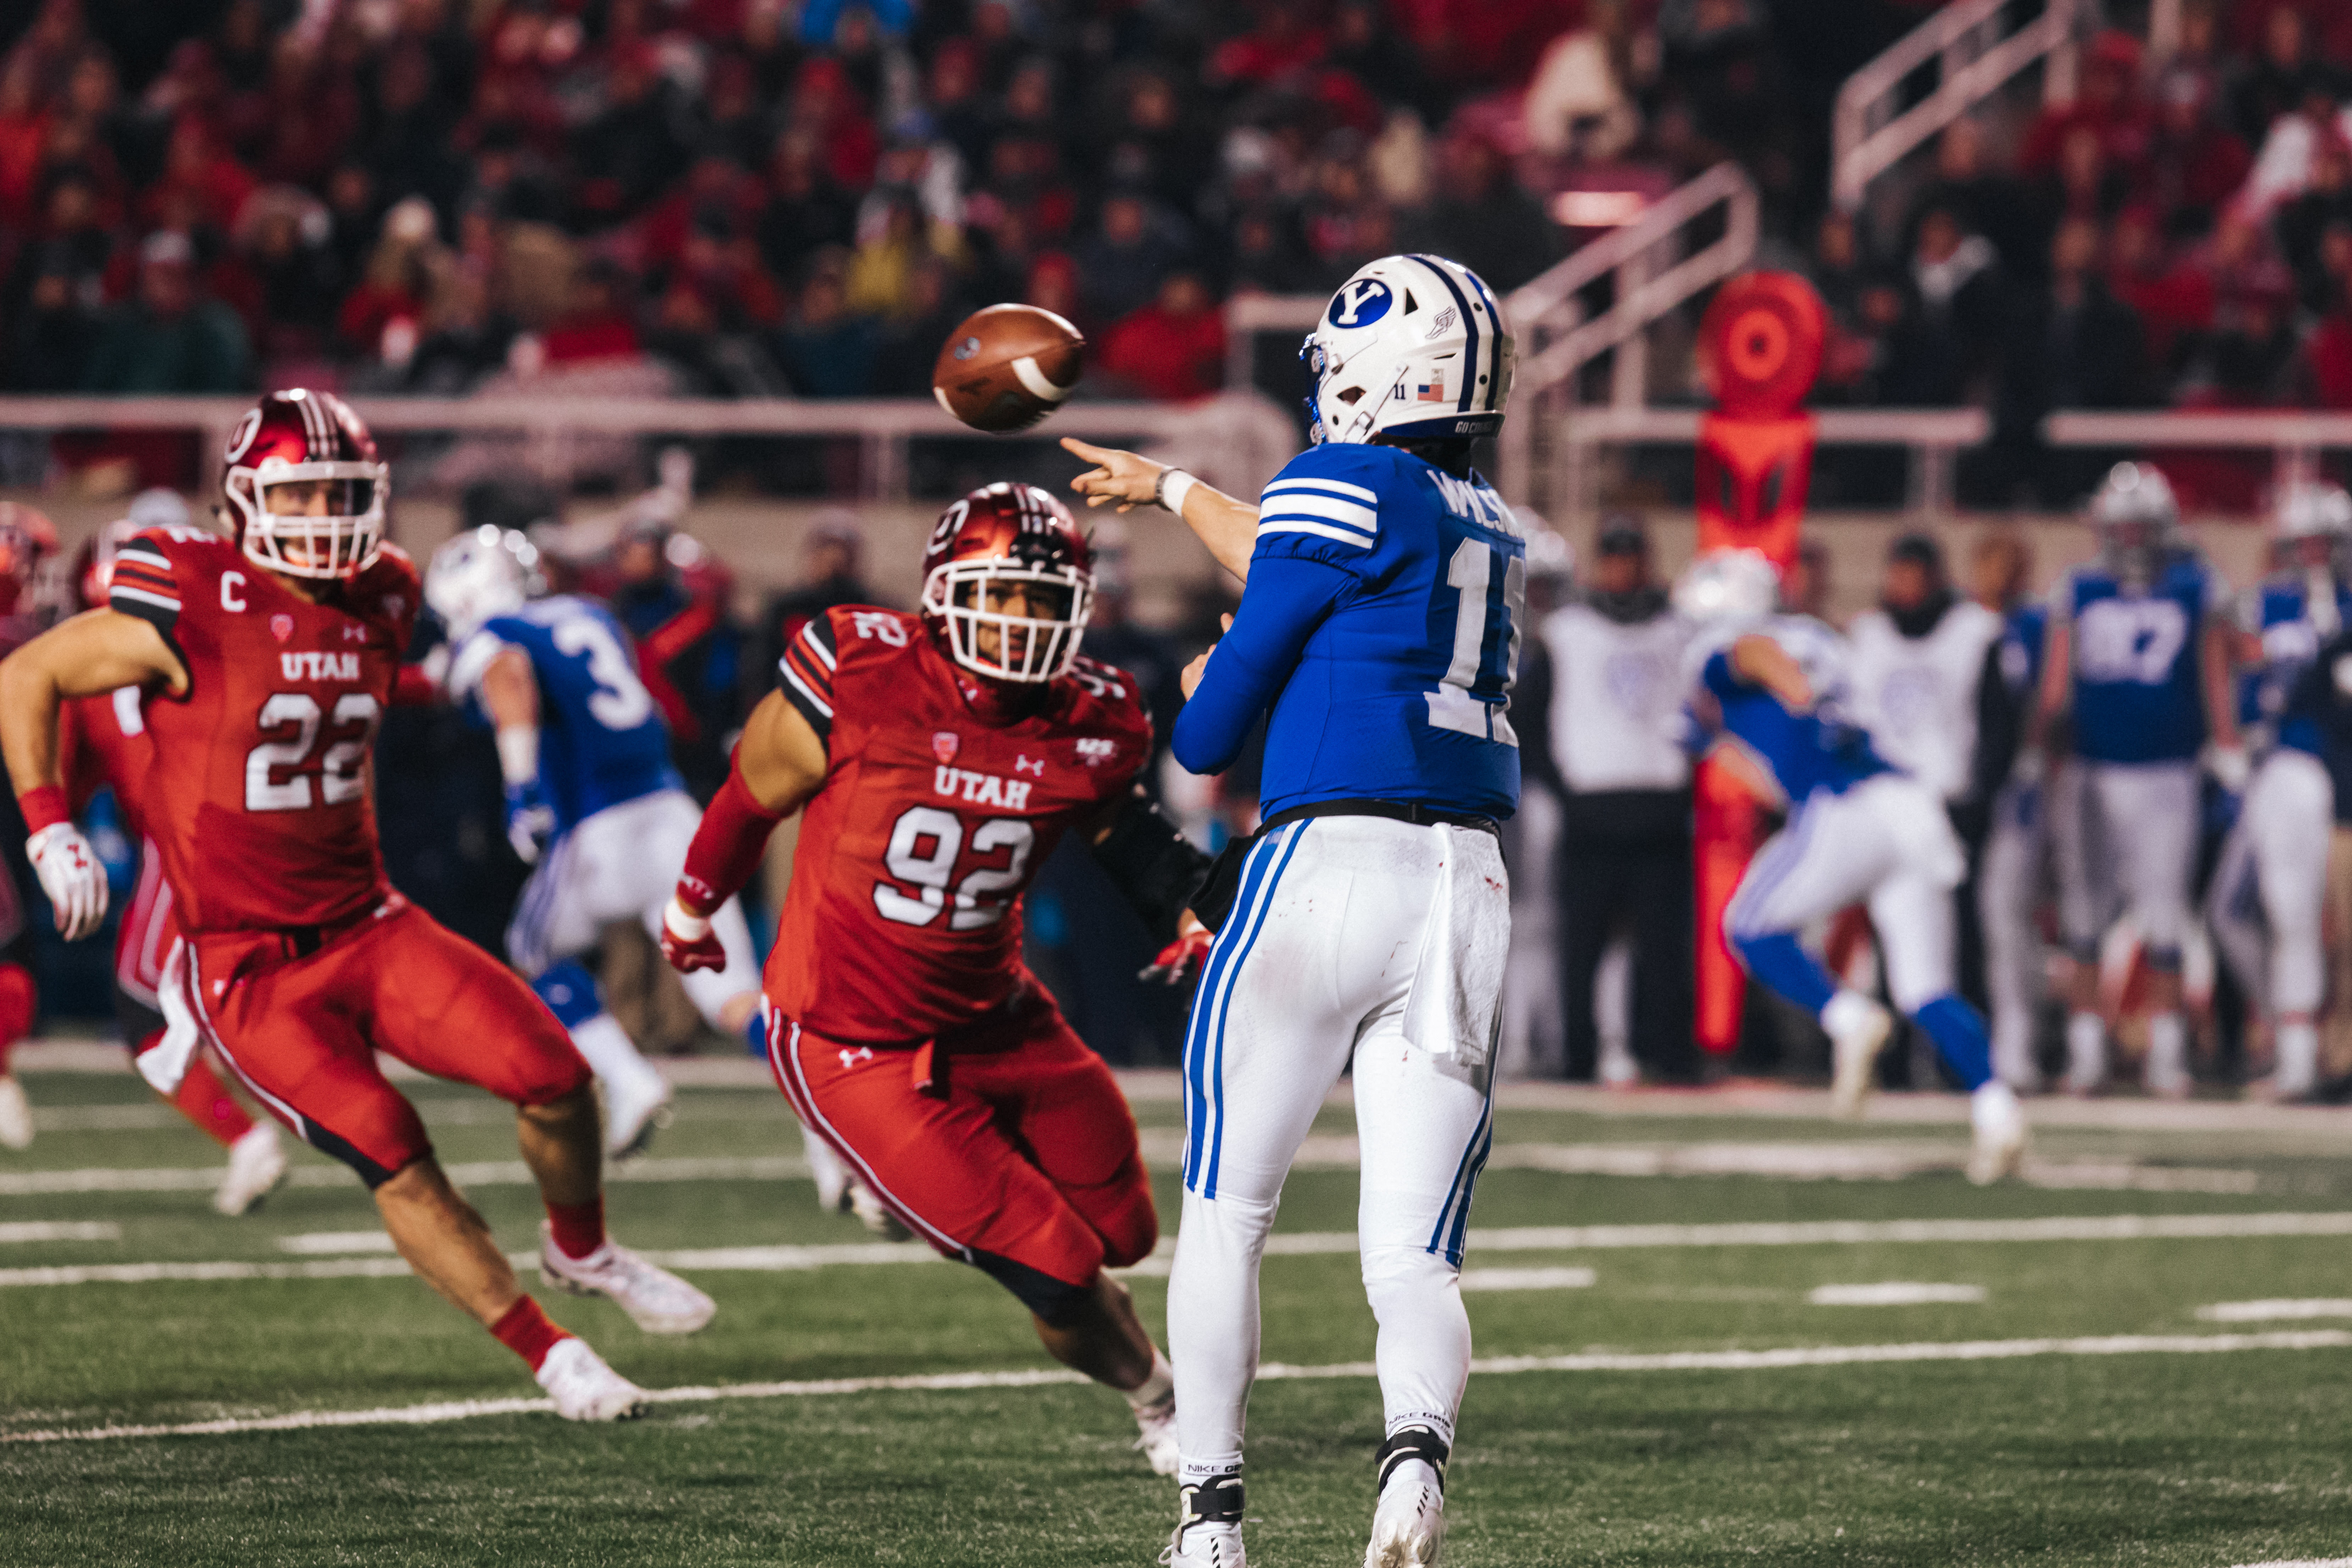 BYU football extends series with Utah through 2024 - The ...